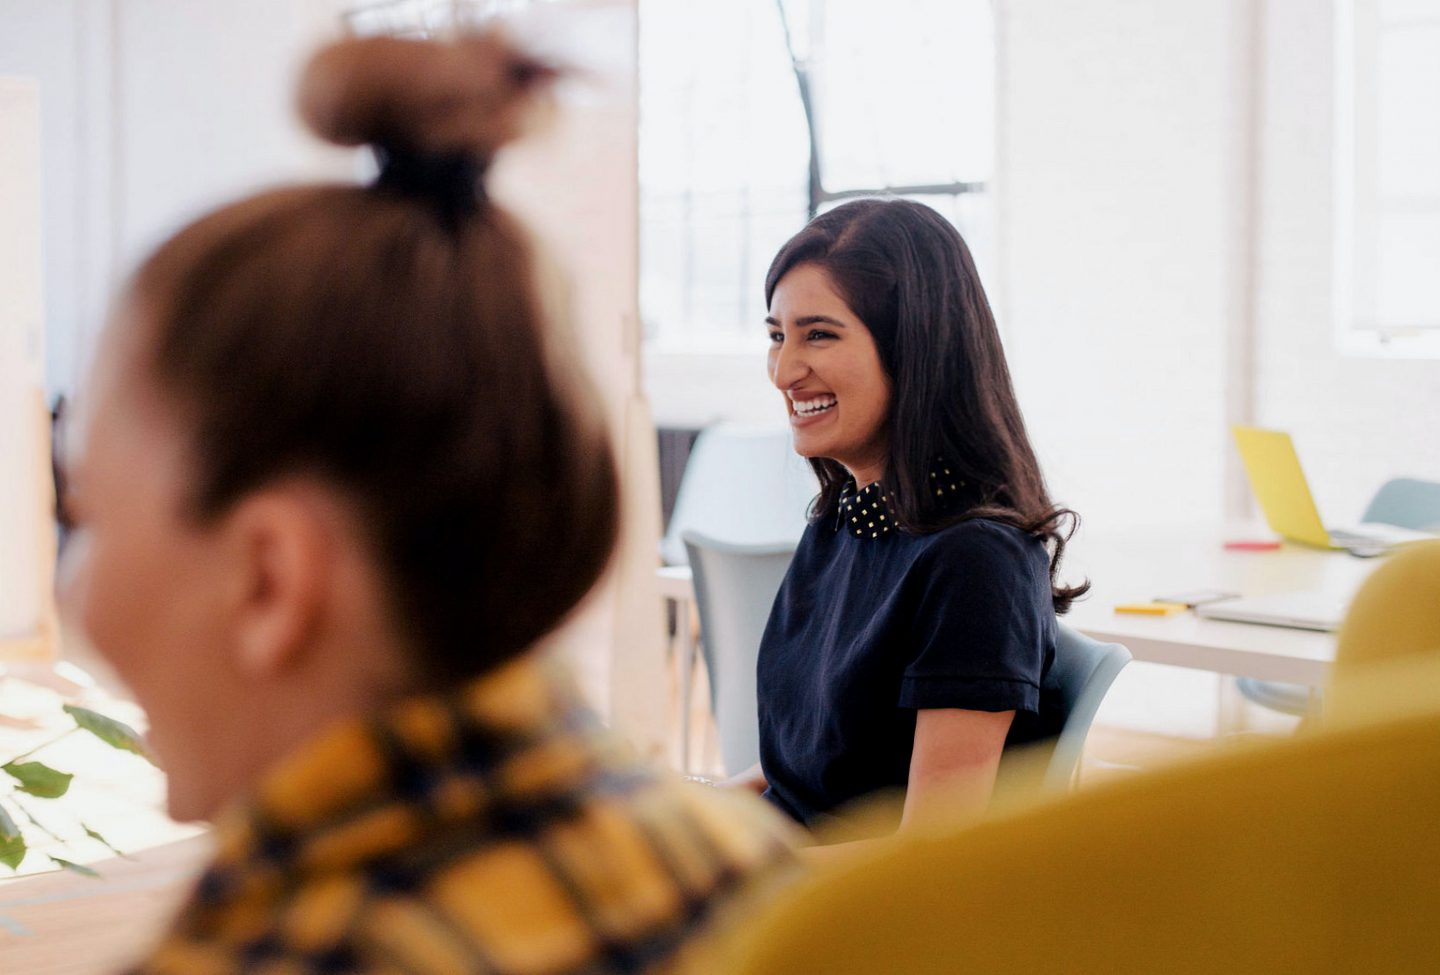 Why employee wellbeing is important and how you can improve it